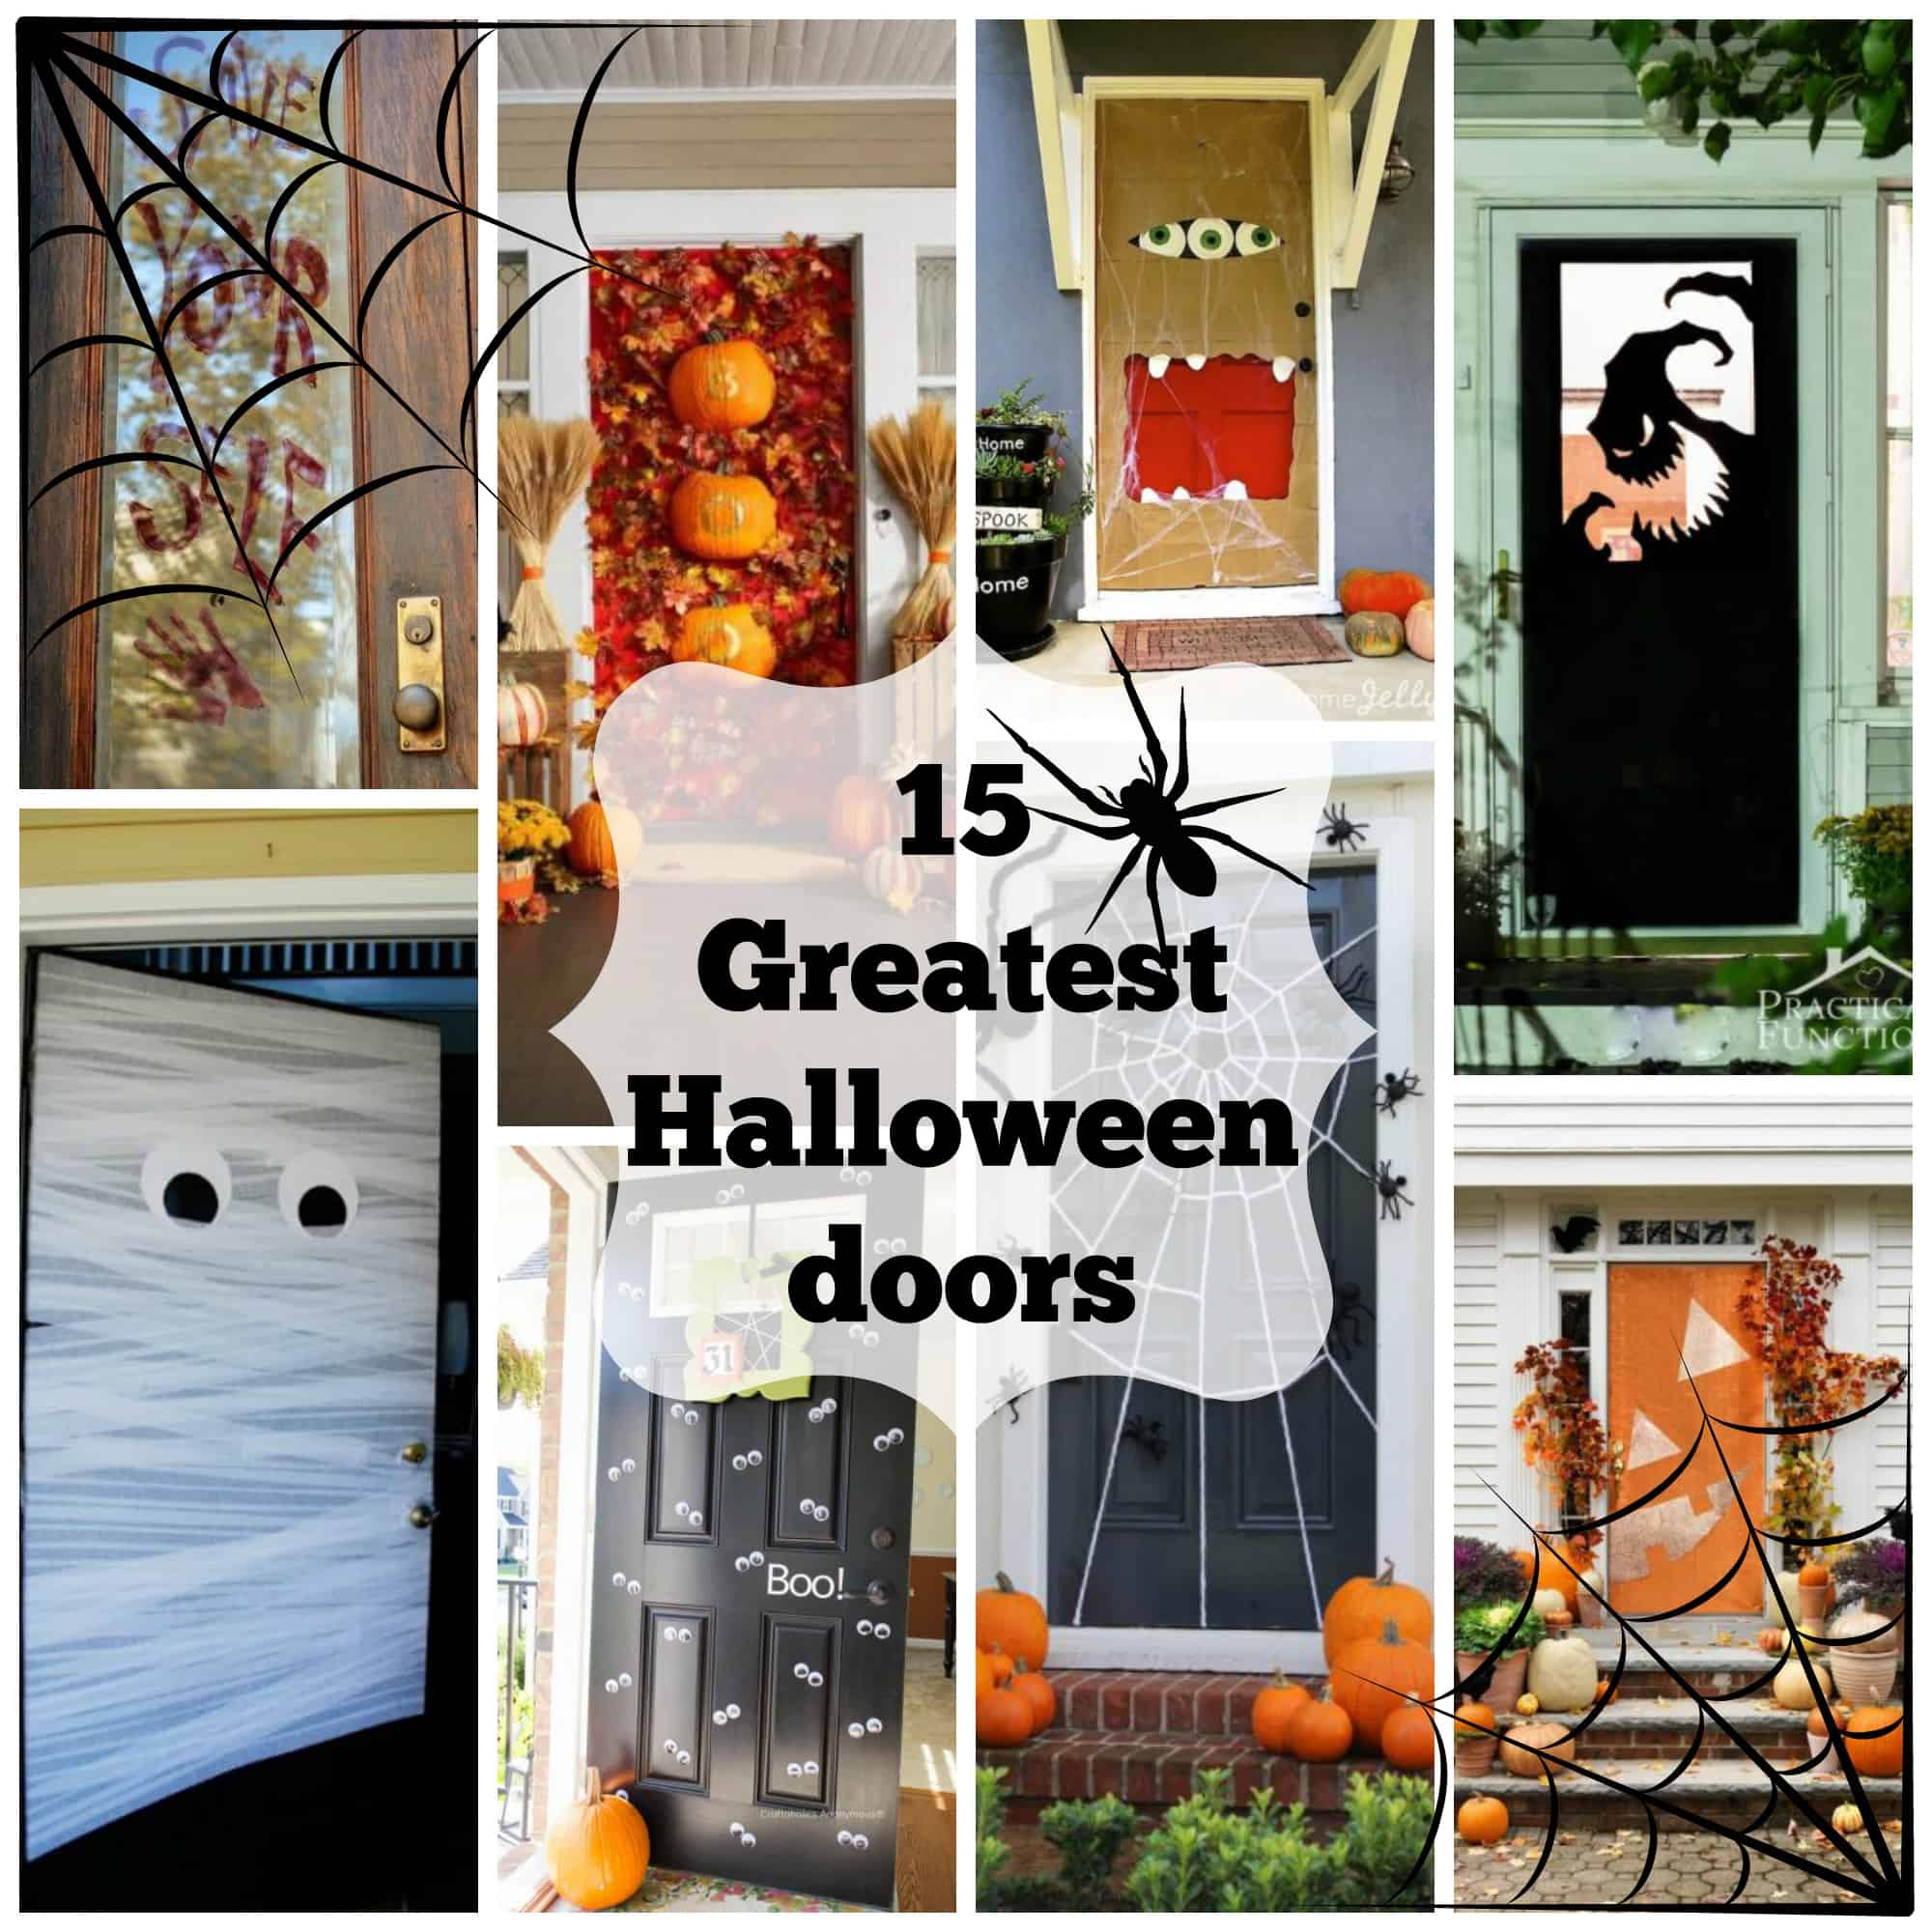 diy door window spooktacular monster halloween diys cor decorations d decor